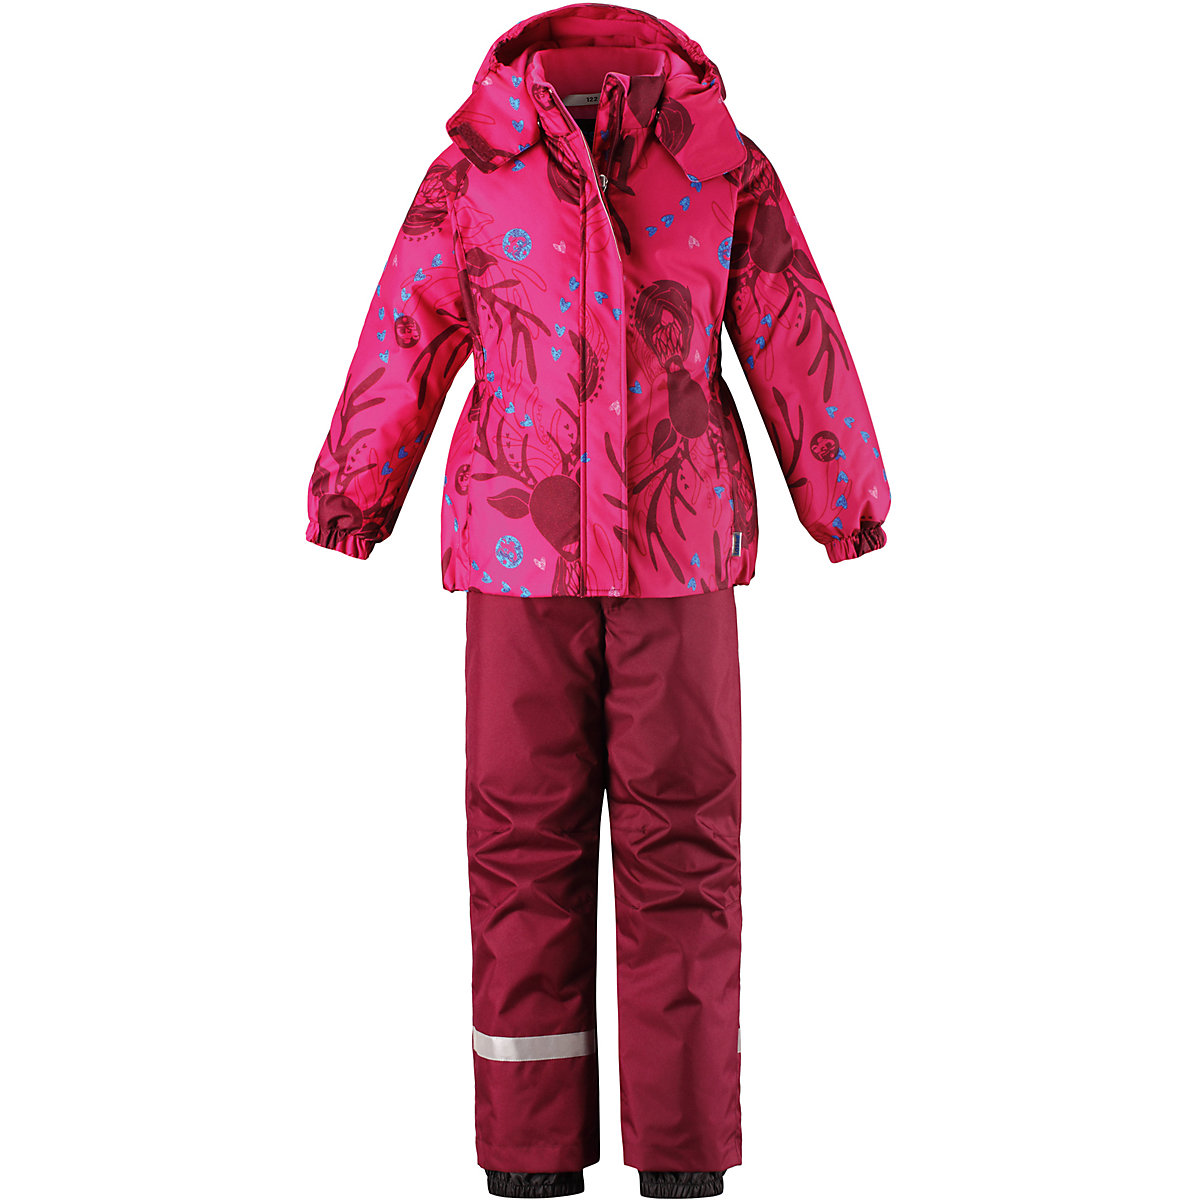 Children's Sets LASSIE for girls 8629350 Winter Track Suit Kids Children clothes Warm children s sets lassie for girls 8631960 winter track suit kids children clothes warm